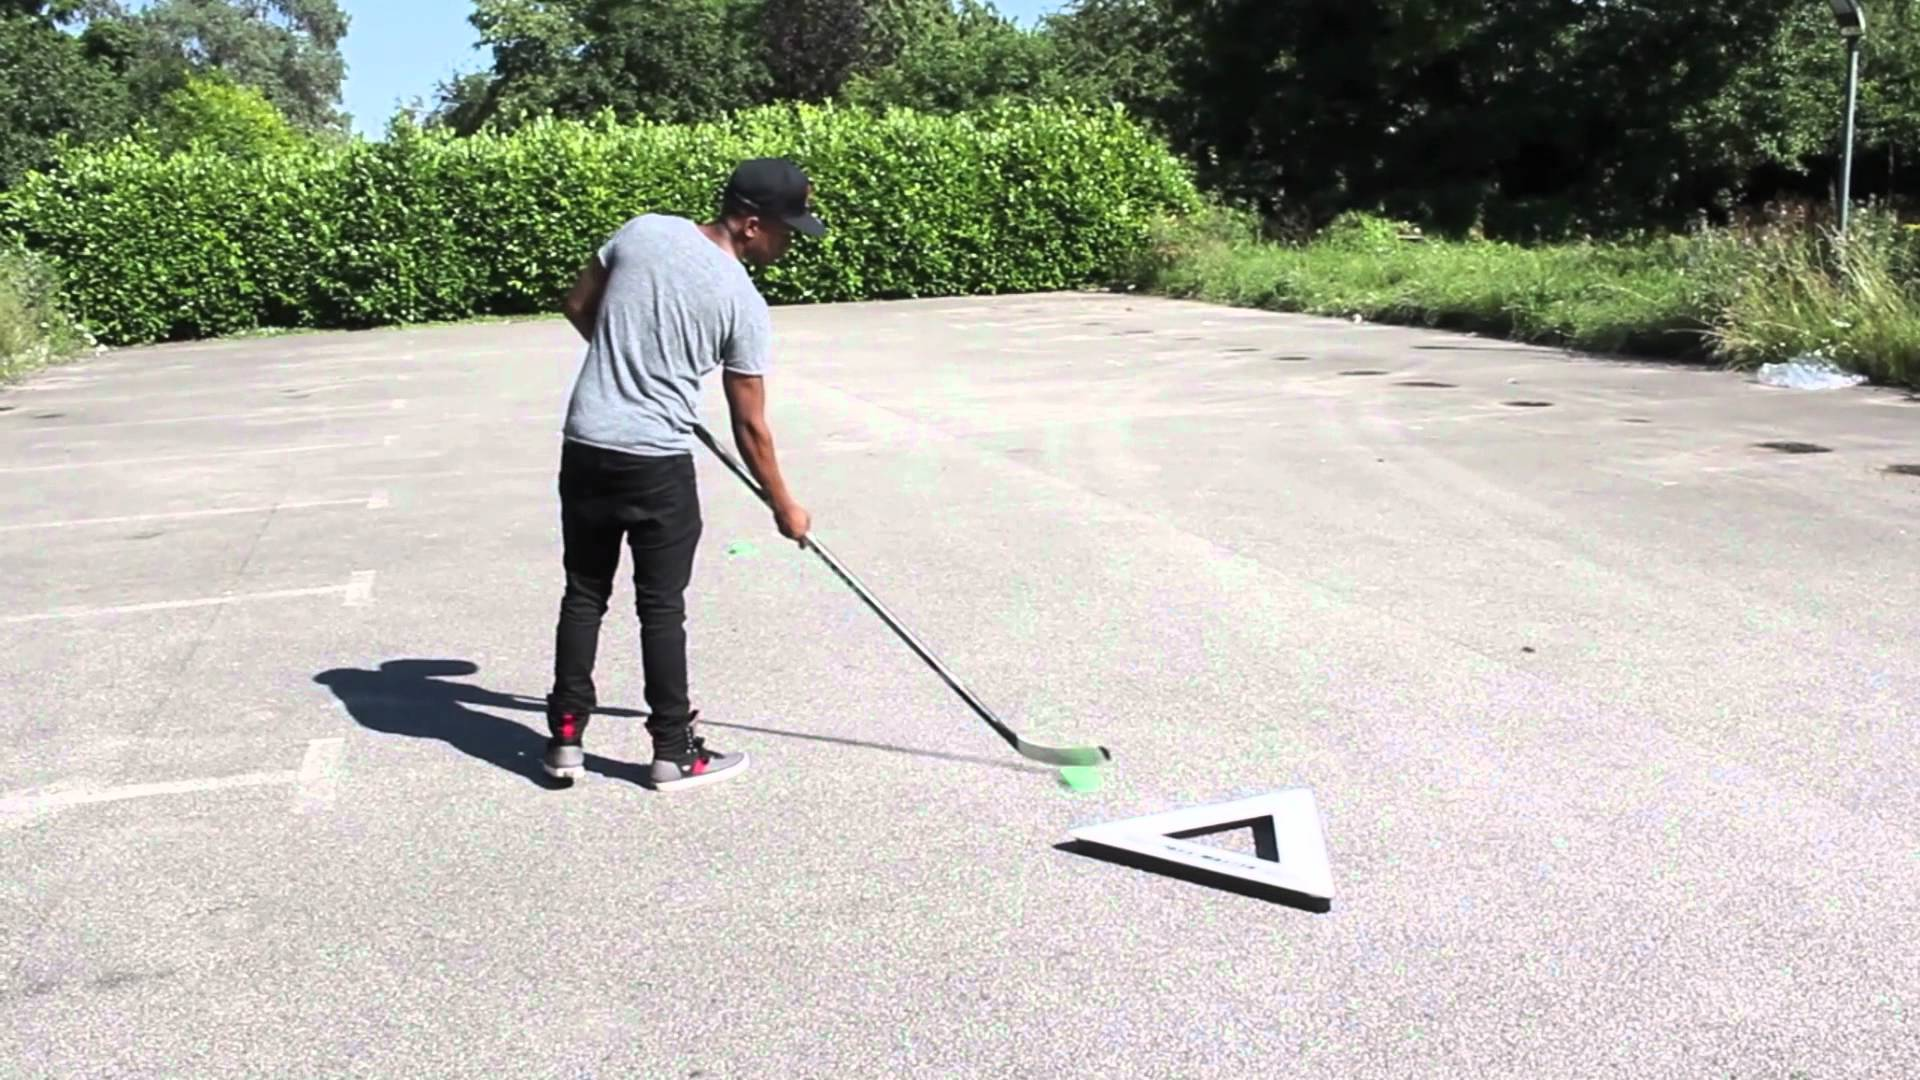 PassMaster Hockey Puck Rebounder Review